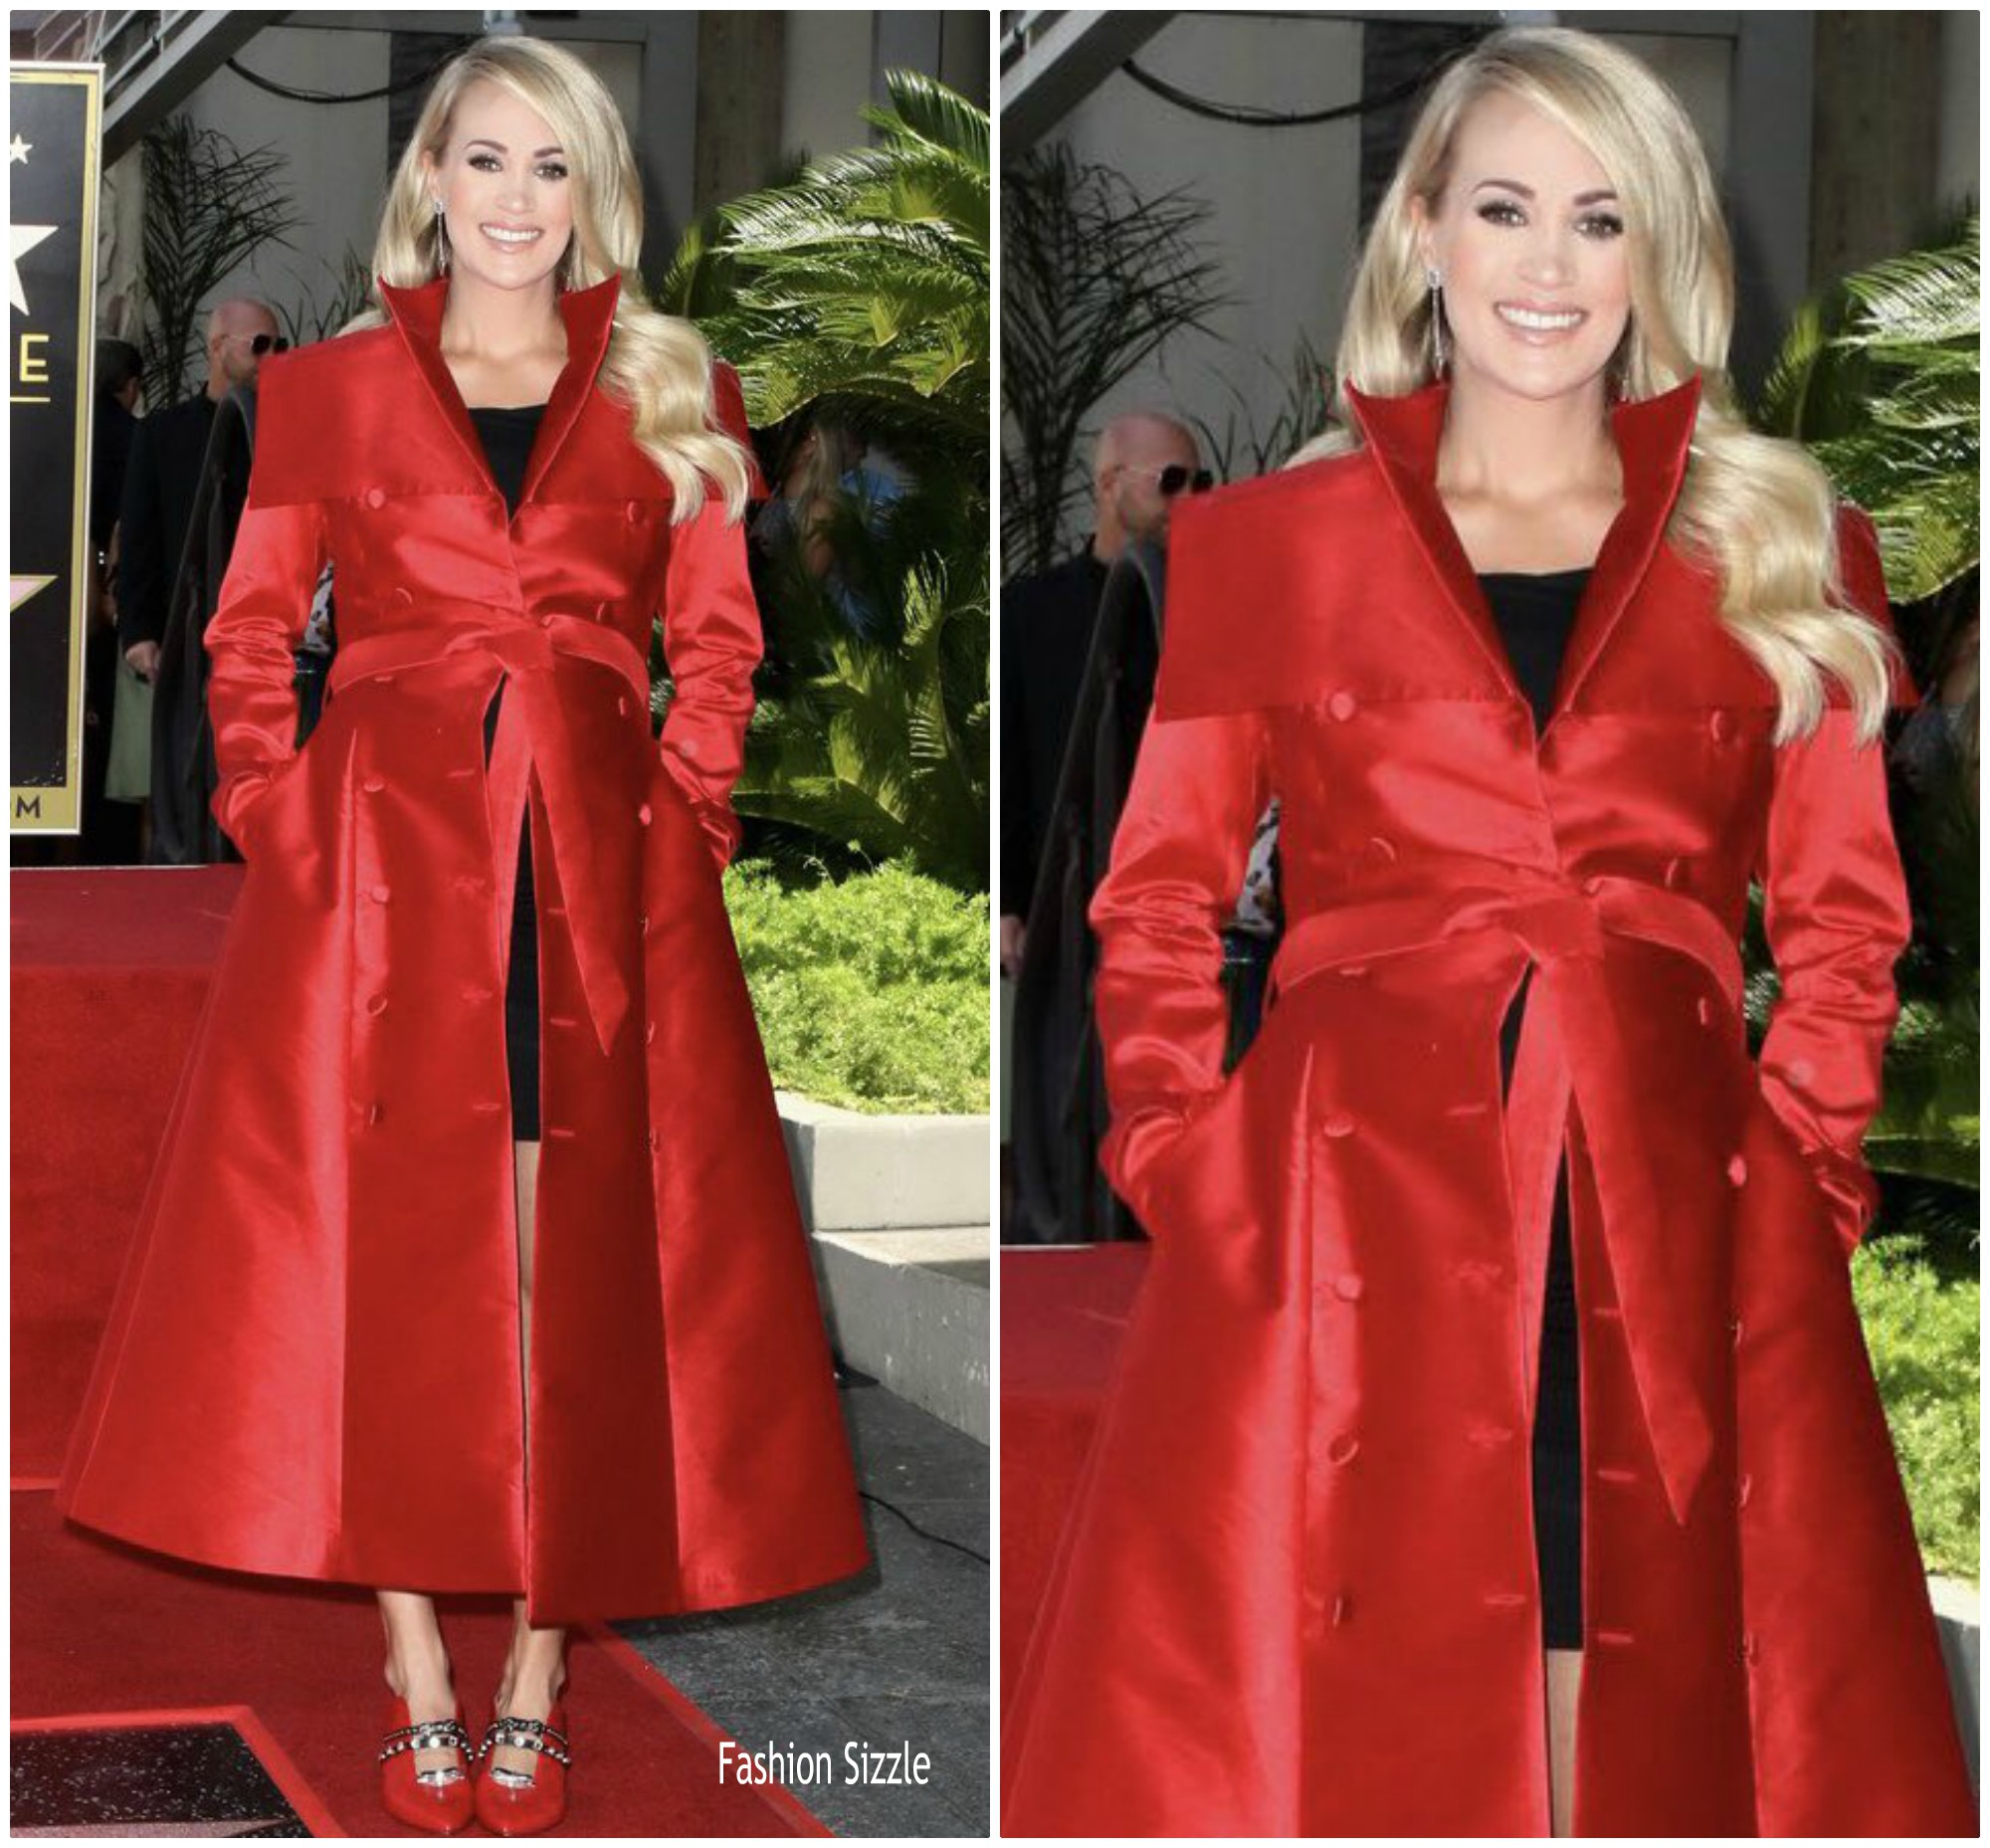 carrie-inderwood-in-john-paul-ataker-isabella-oliver-star-on-hollywood-walk-of-fame-unveiling